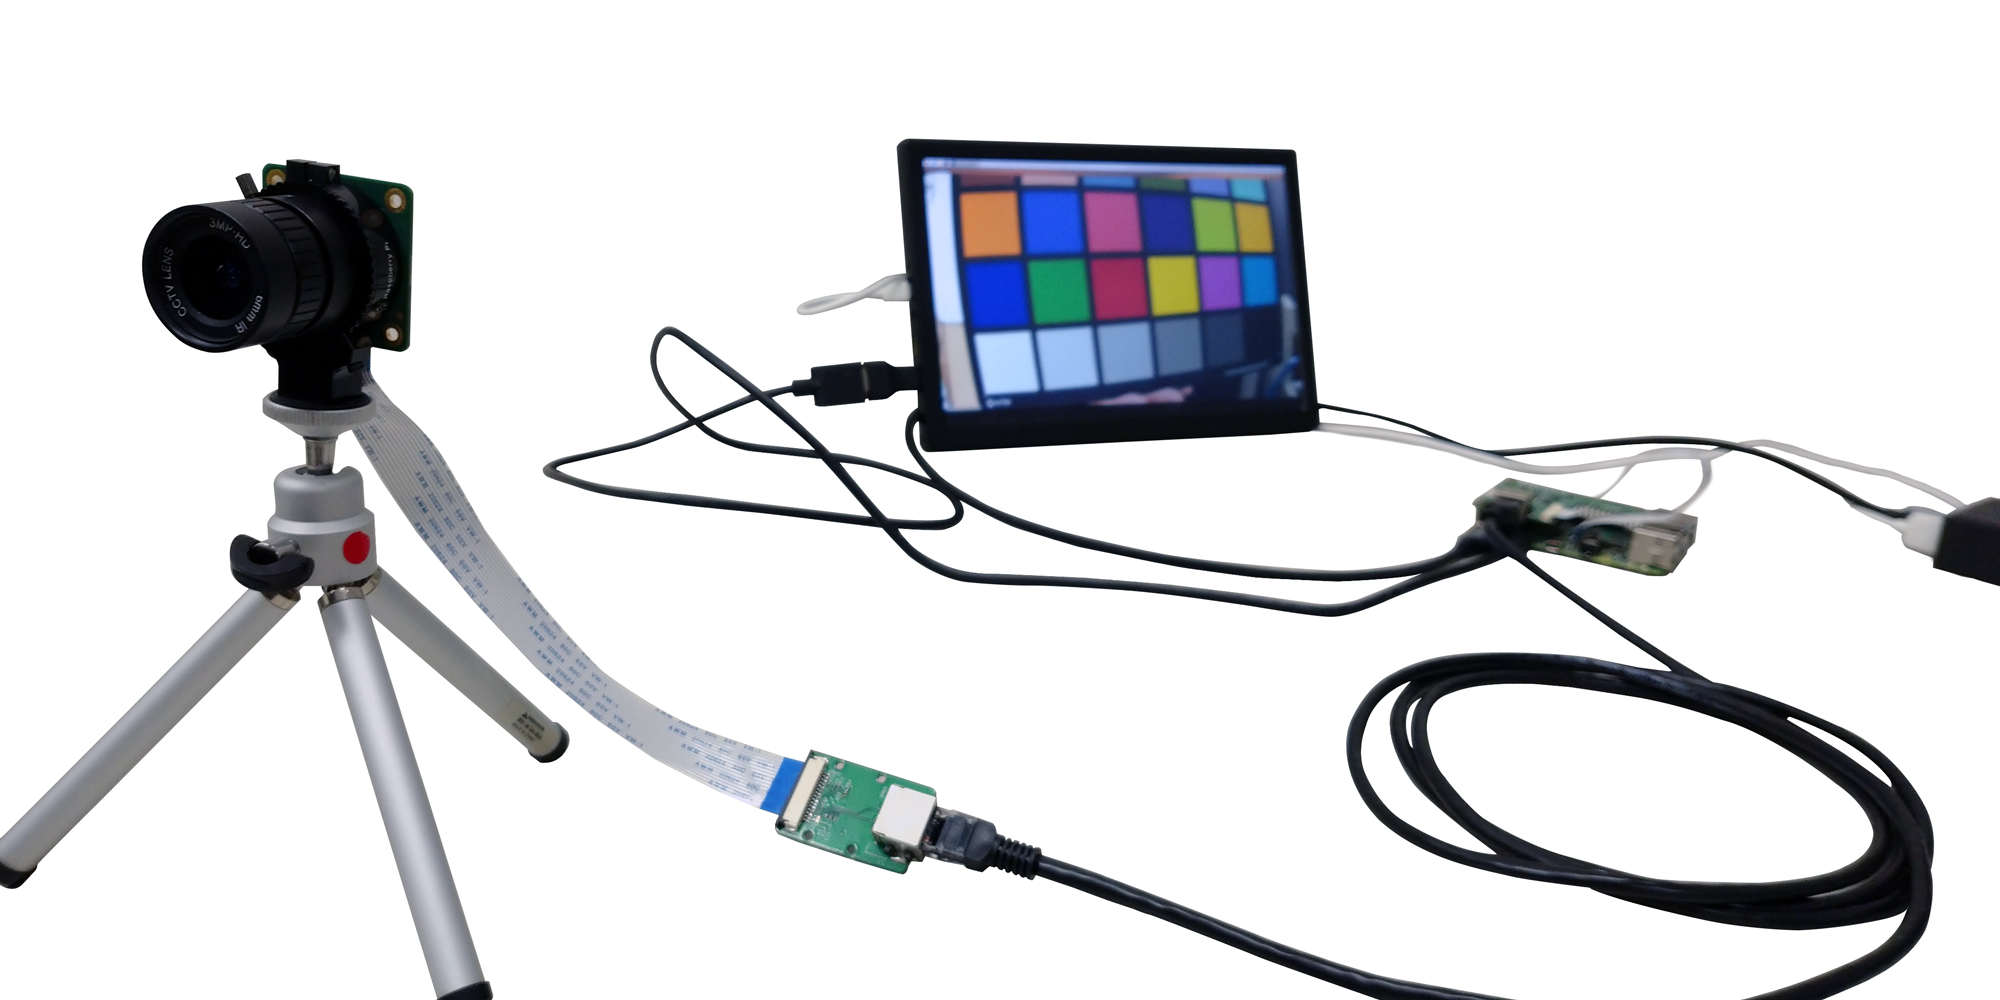 Cable Extension Kit for Raspberry Pi Camera